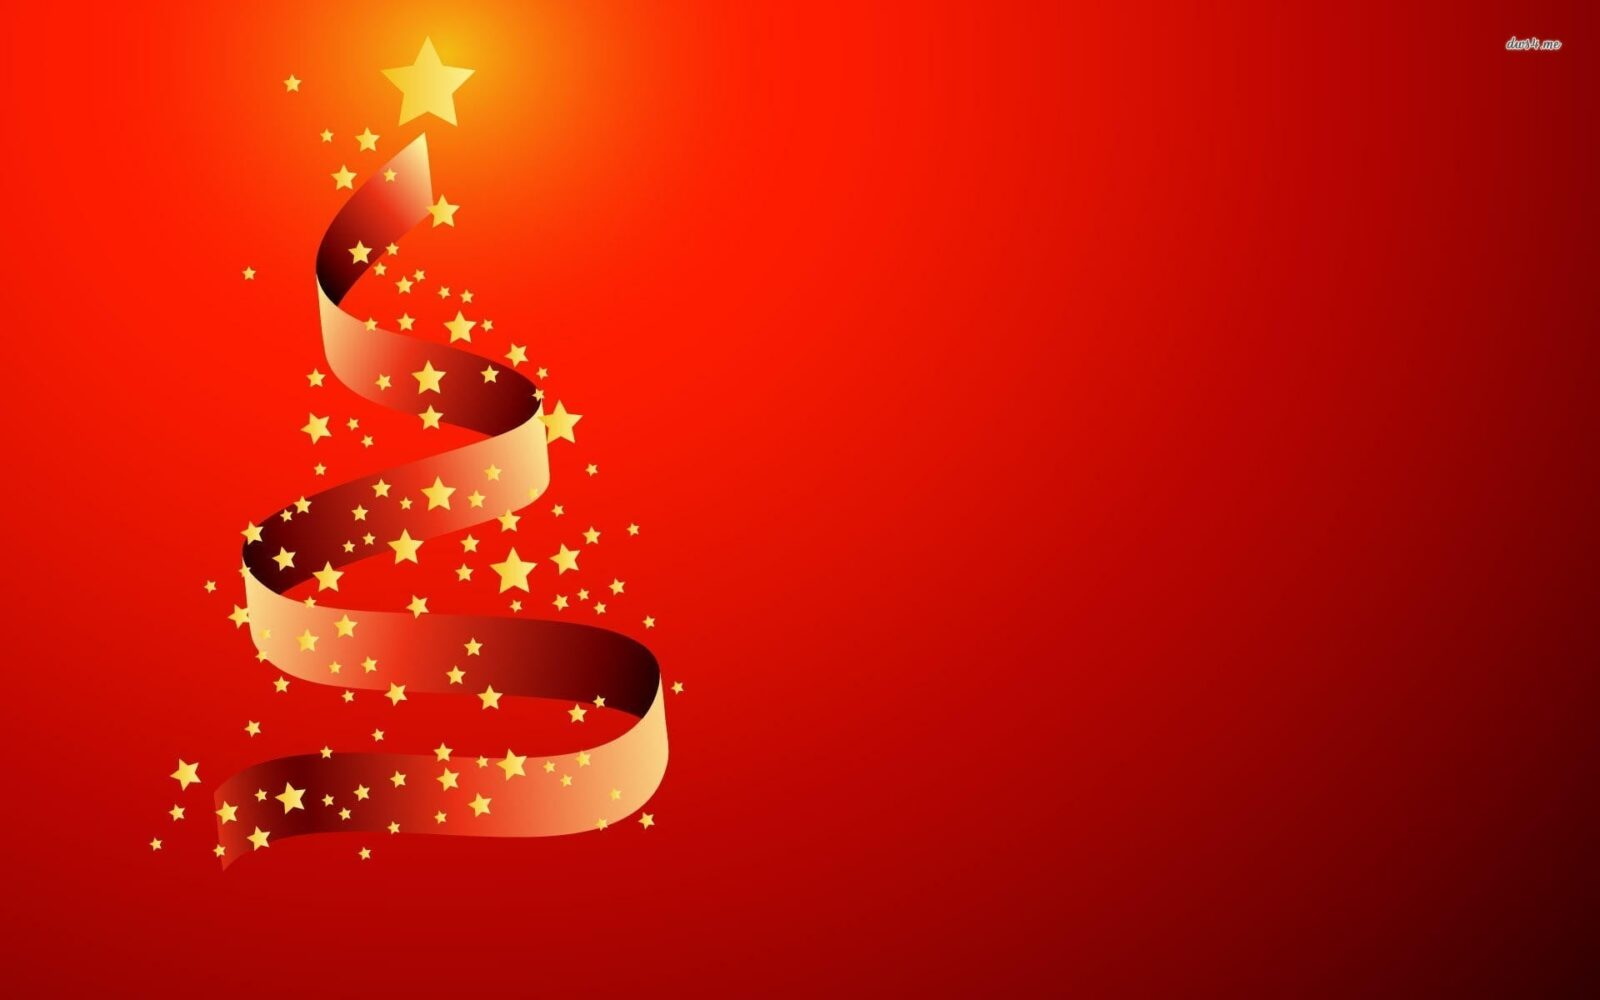 Christmas Background Hd.67 Christmas Wallpapers Hd Free Download